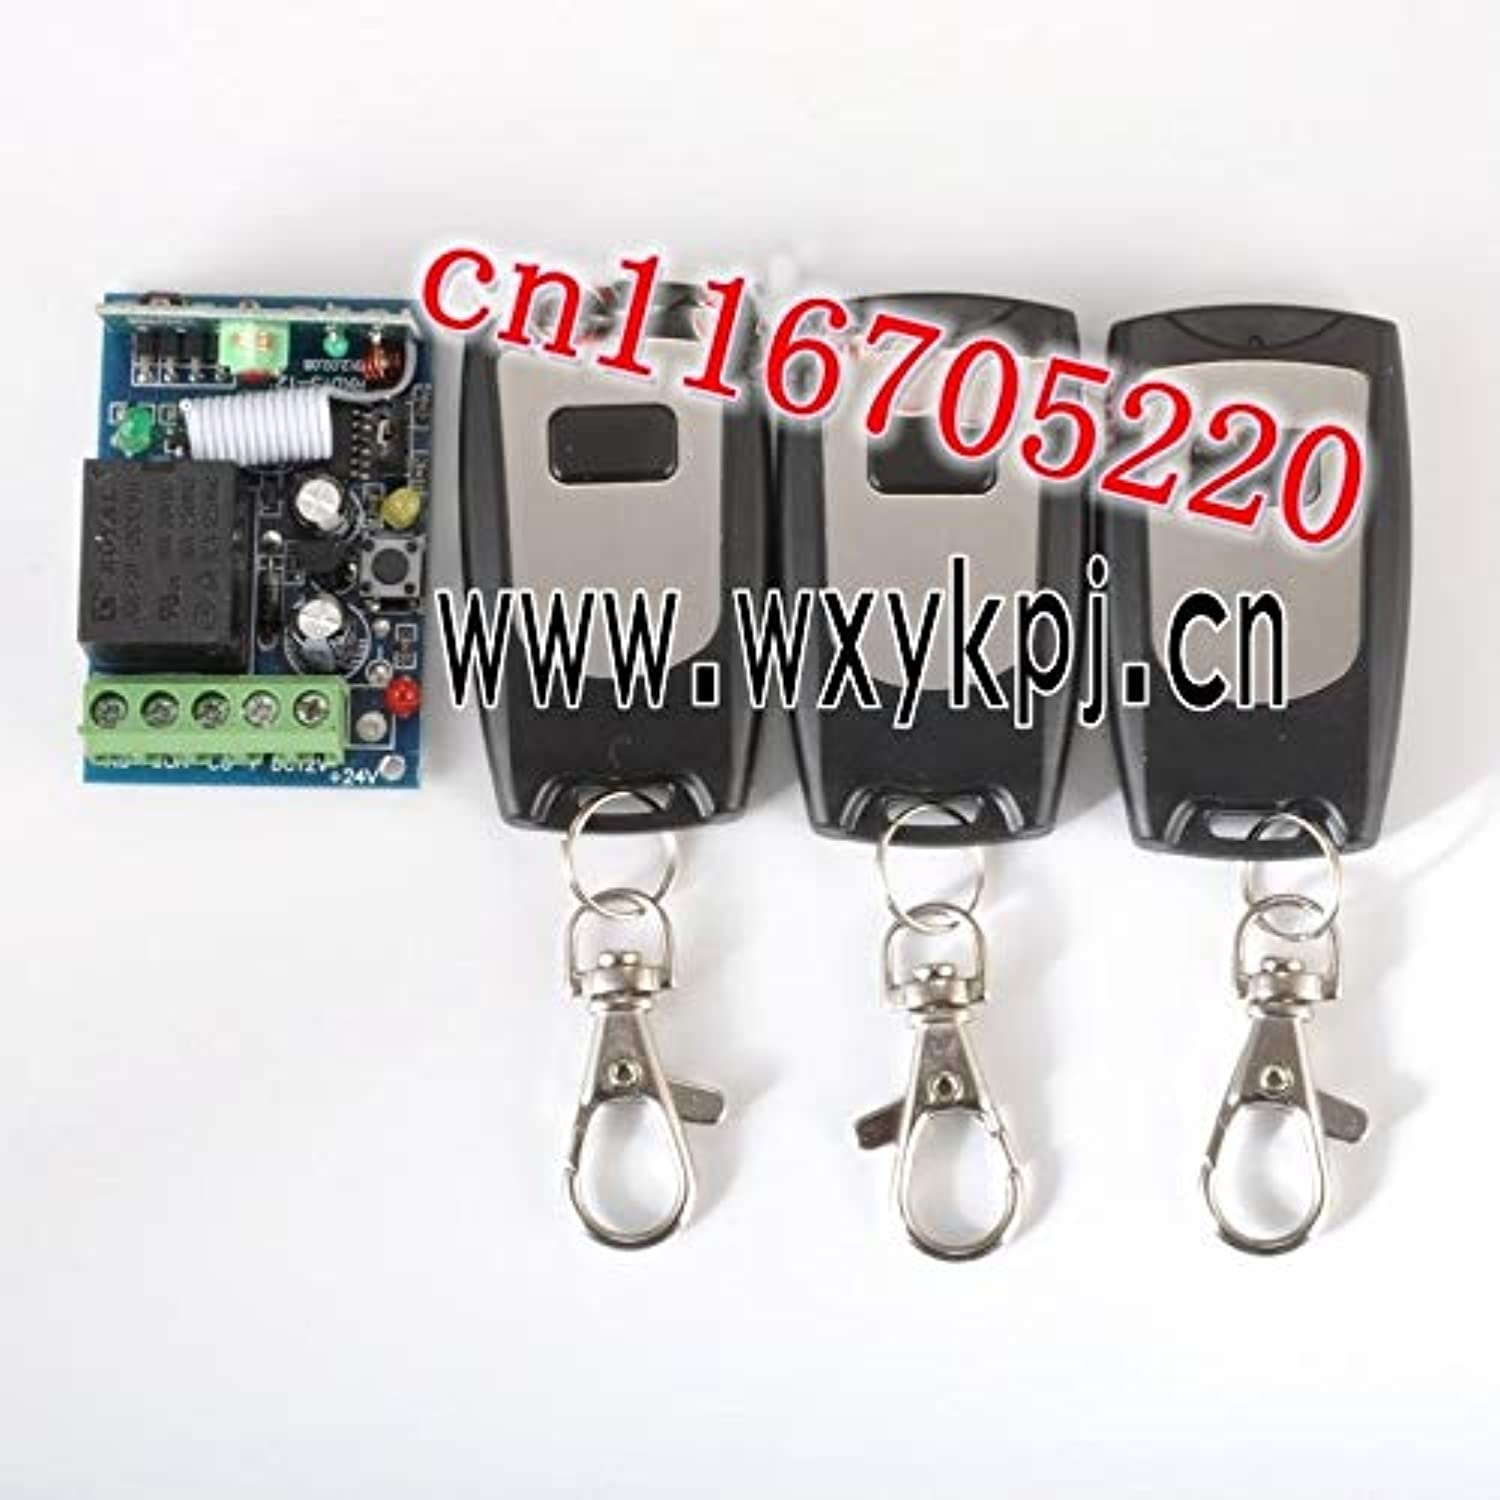 DC 12V 10A 1 Wireless Remote Switch System with 3 Controller Wireless Receiver&3Transmitter 12V 1 Channel 10A Learning Code